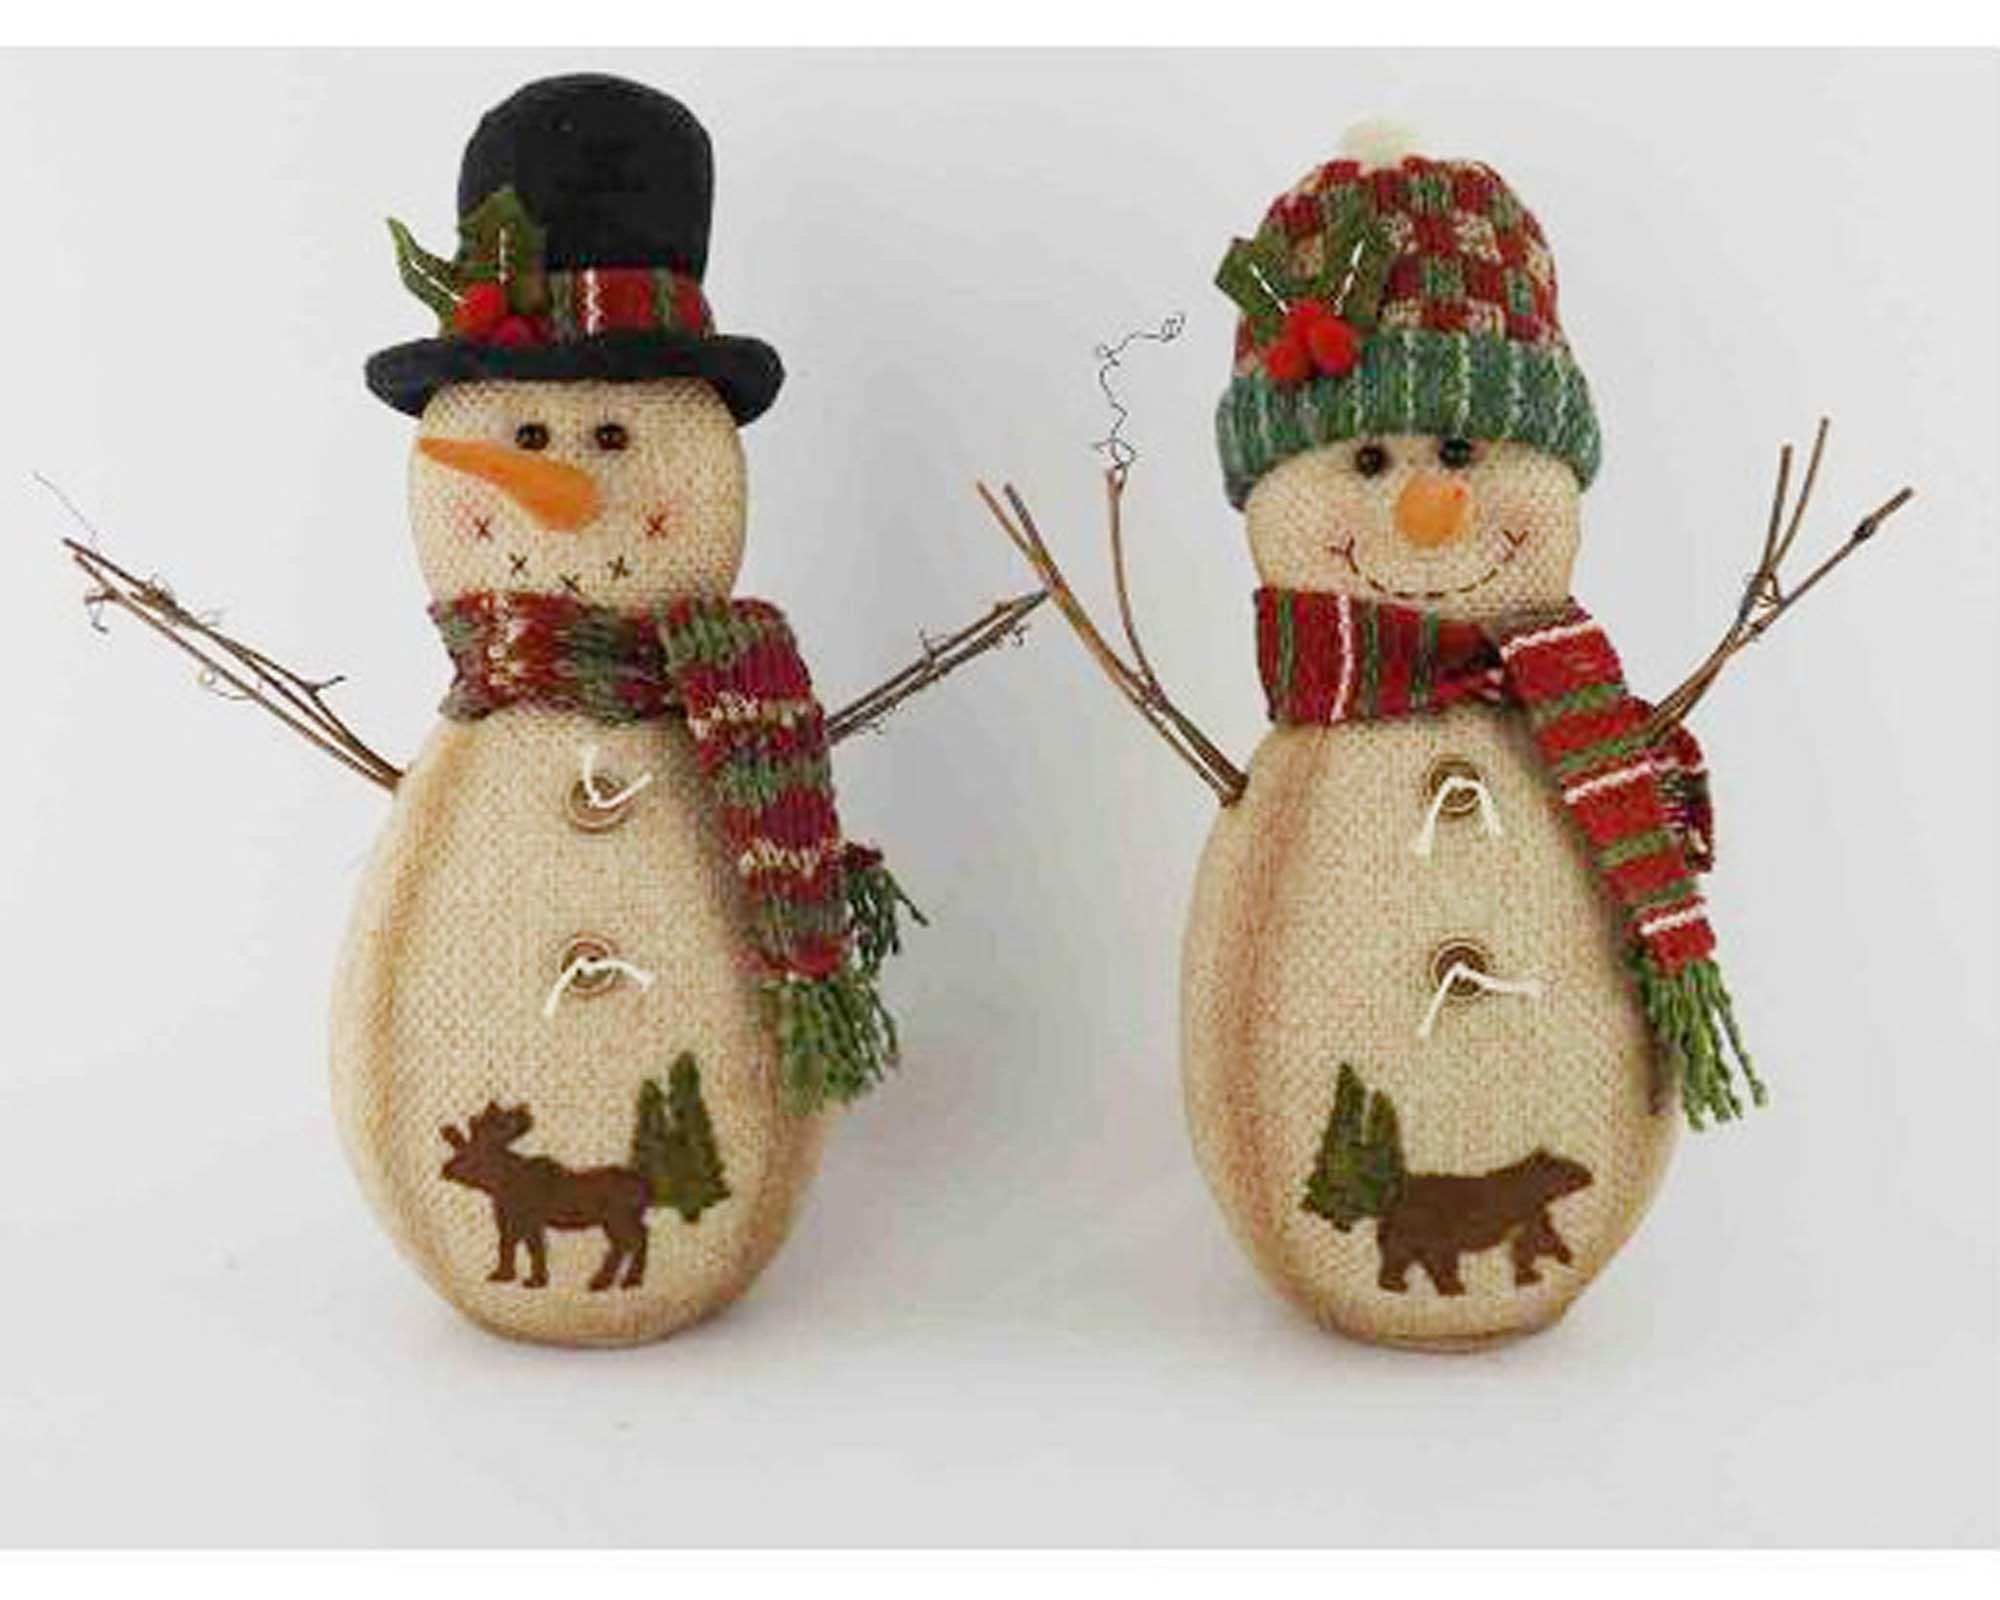 Burlap Half Body Snowman Couple With Twig Arms Fabric Hats Scarfs And Animal Stitchings On Their Bellies Standing Assorted Set Of 2 9 5 Tall